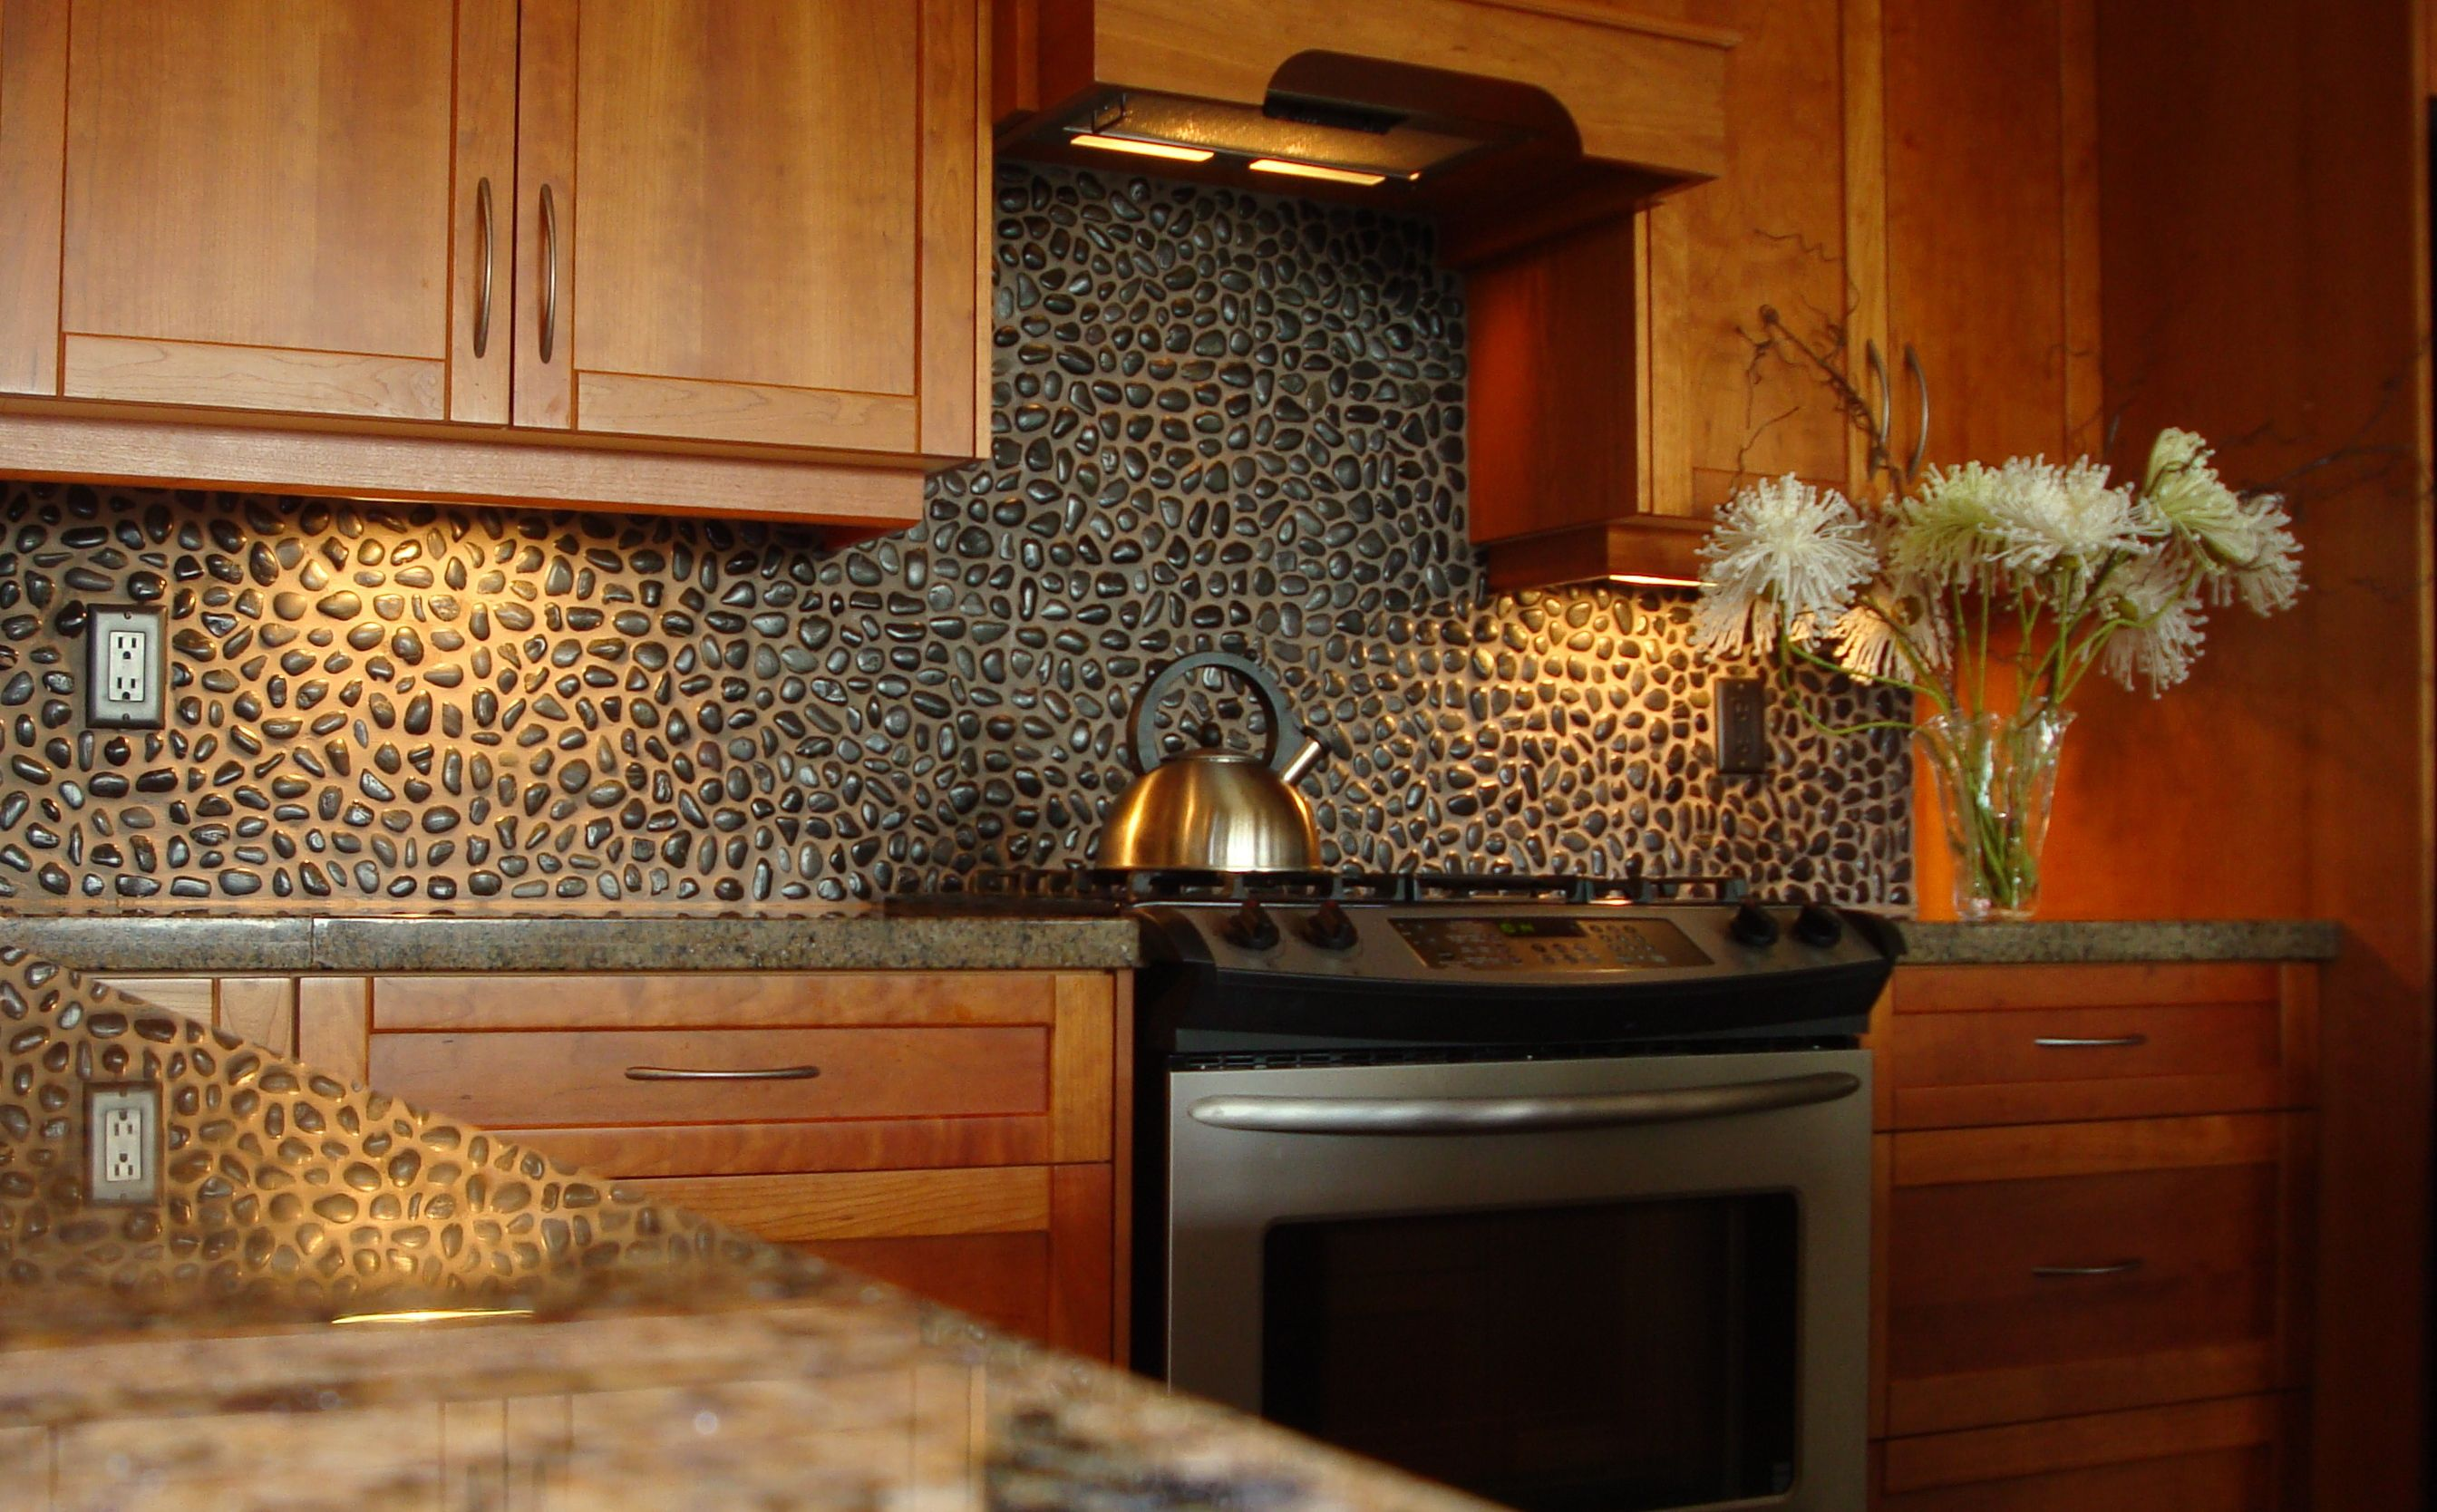 wonderful-kitchen-backsplash-designs-made-of-small-stones-combine-with-black-granite-countertop